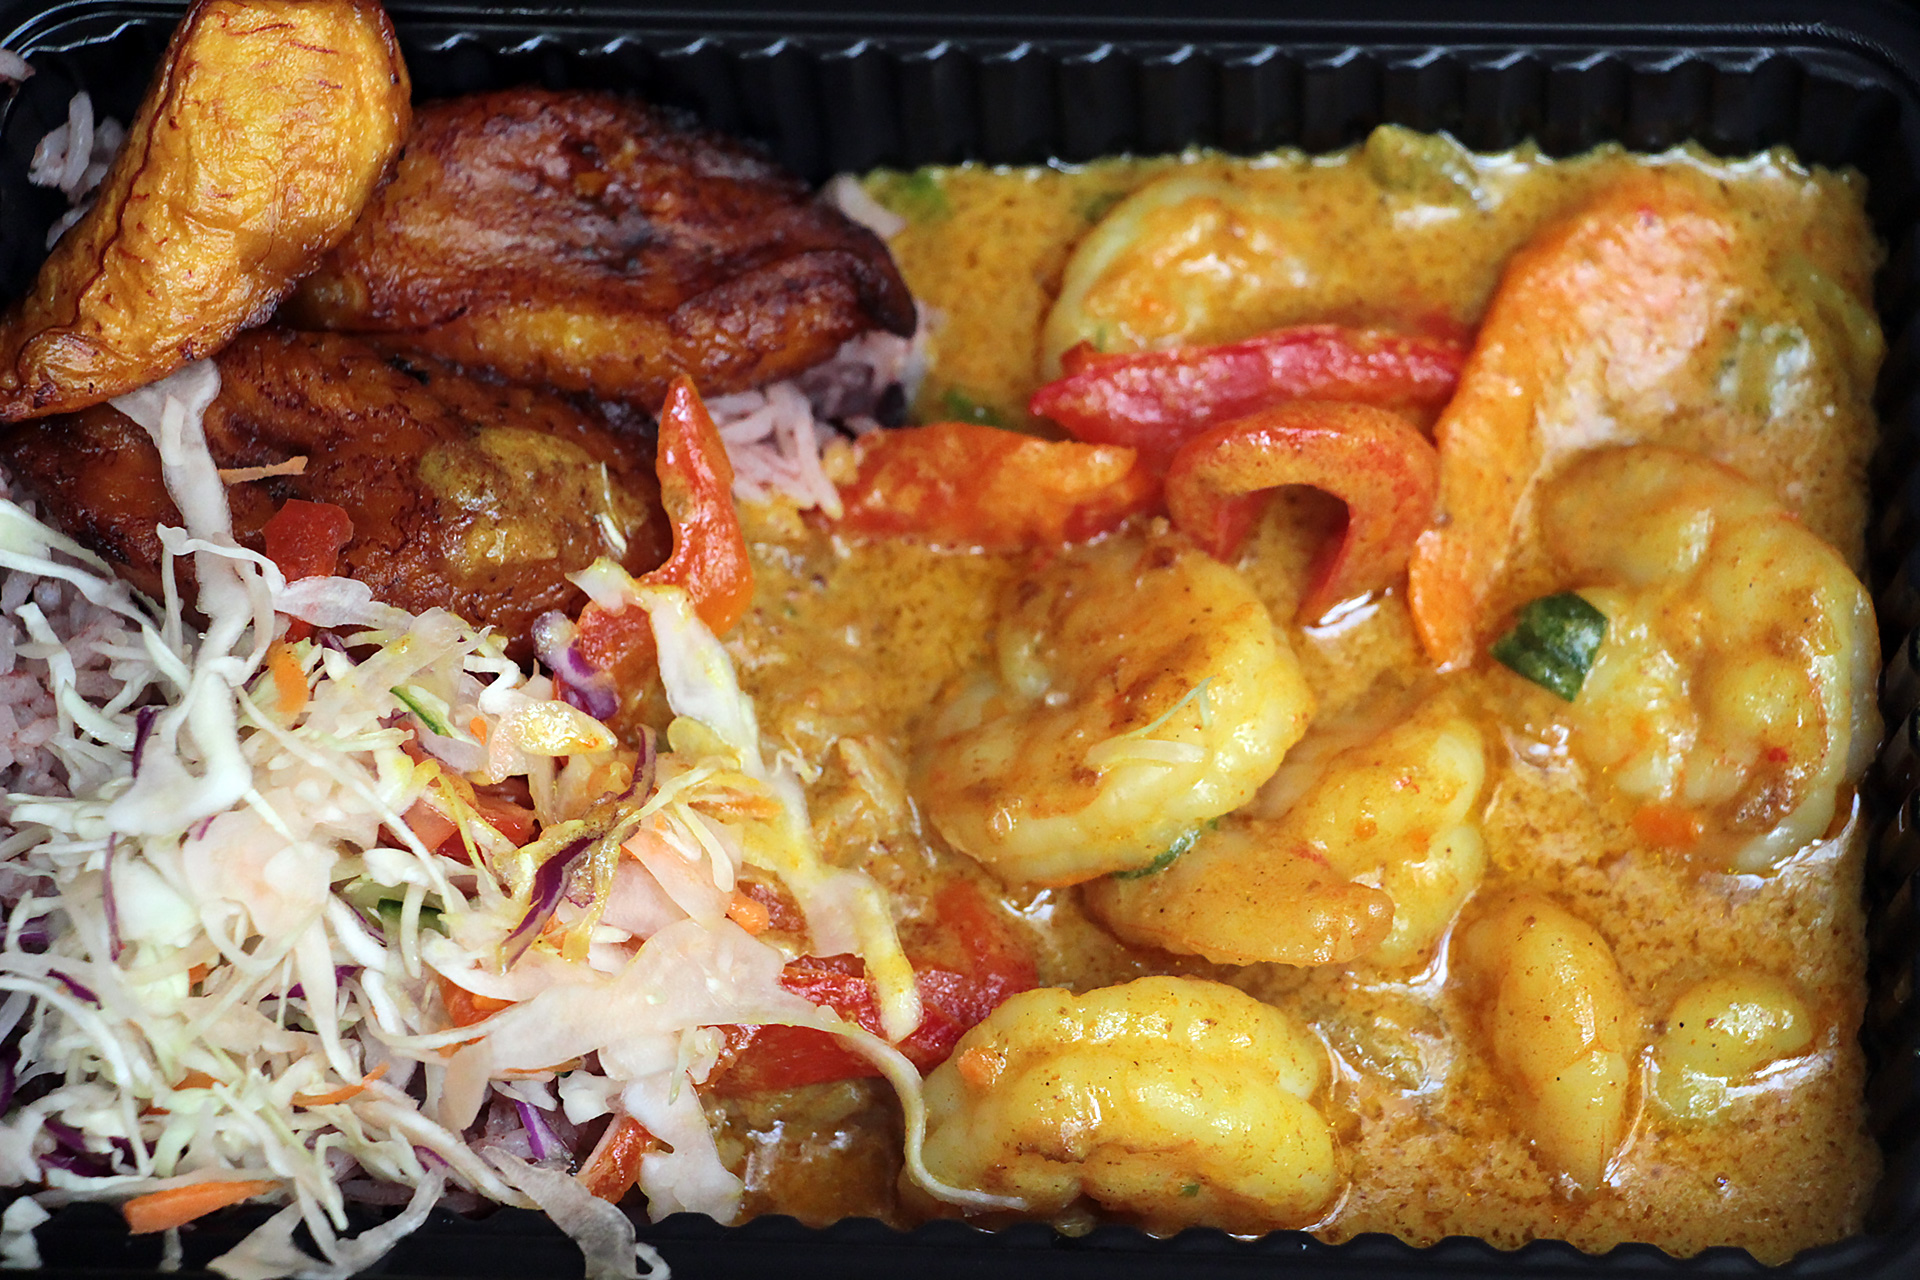 Curry Shrimp at Scotch Bonnet.